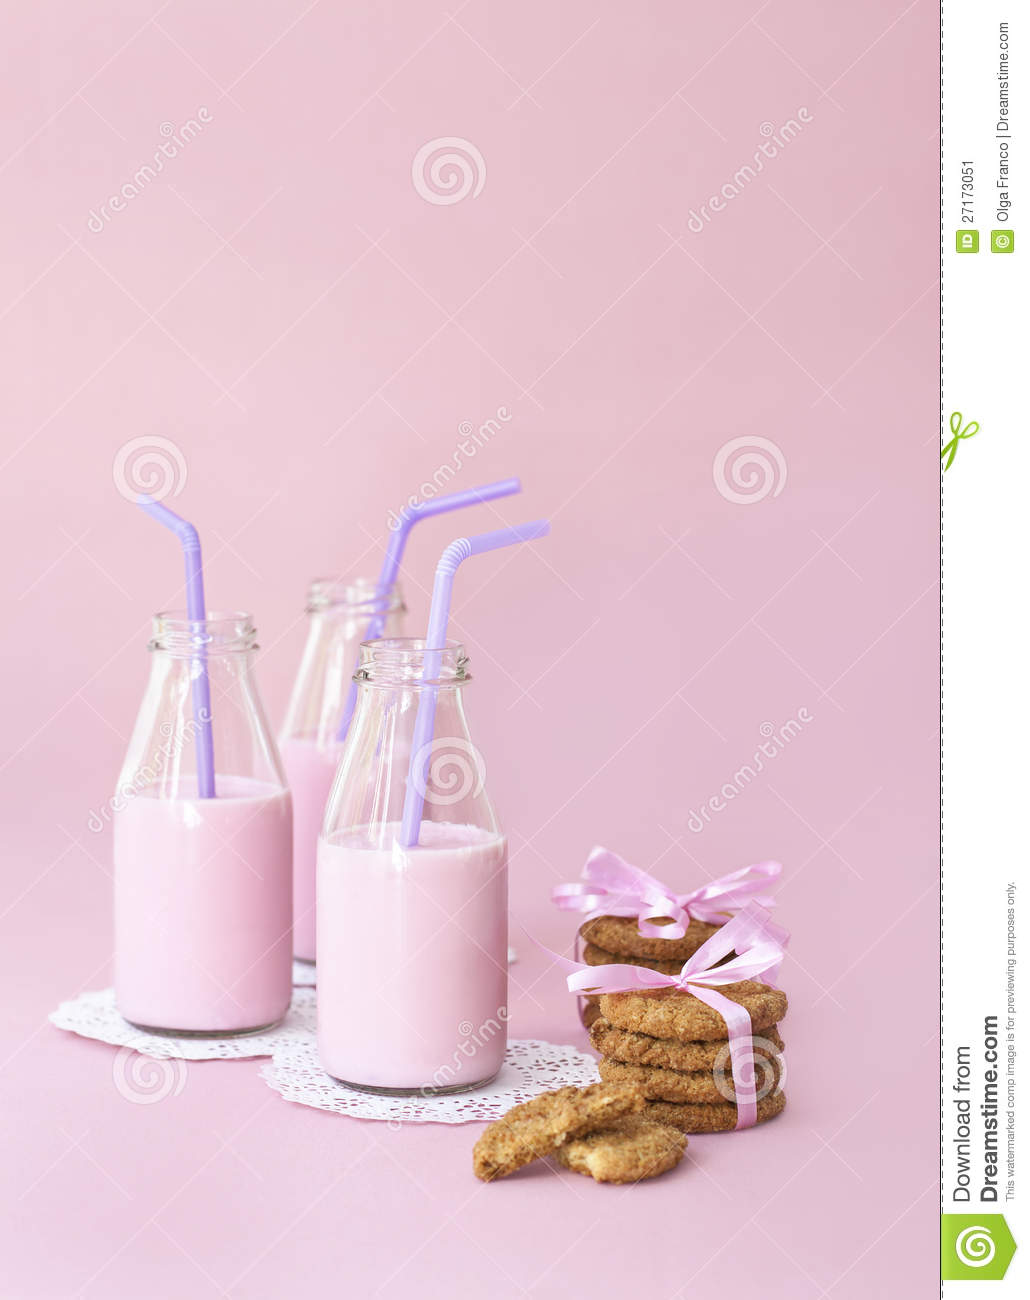 Strawberry milk and cookies on pink